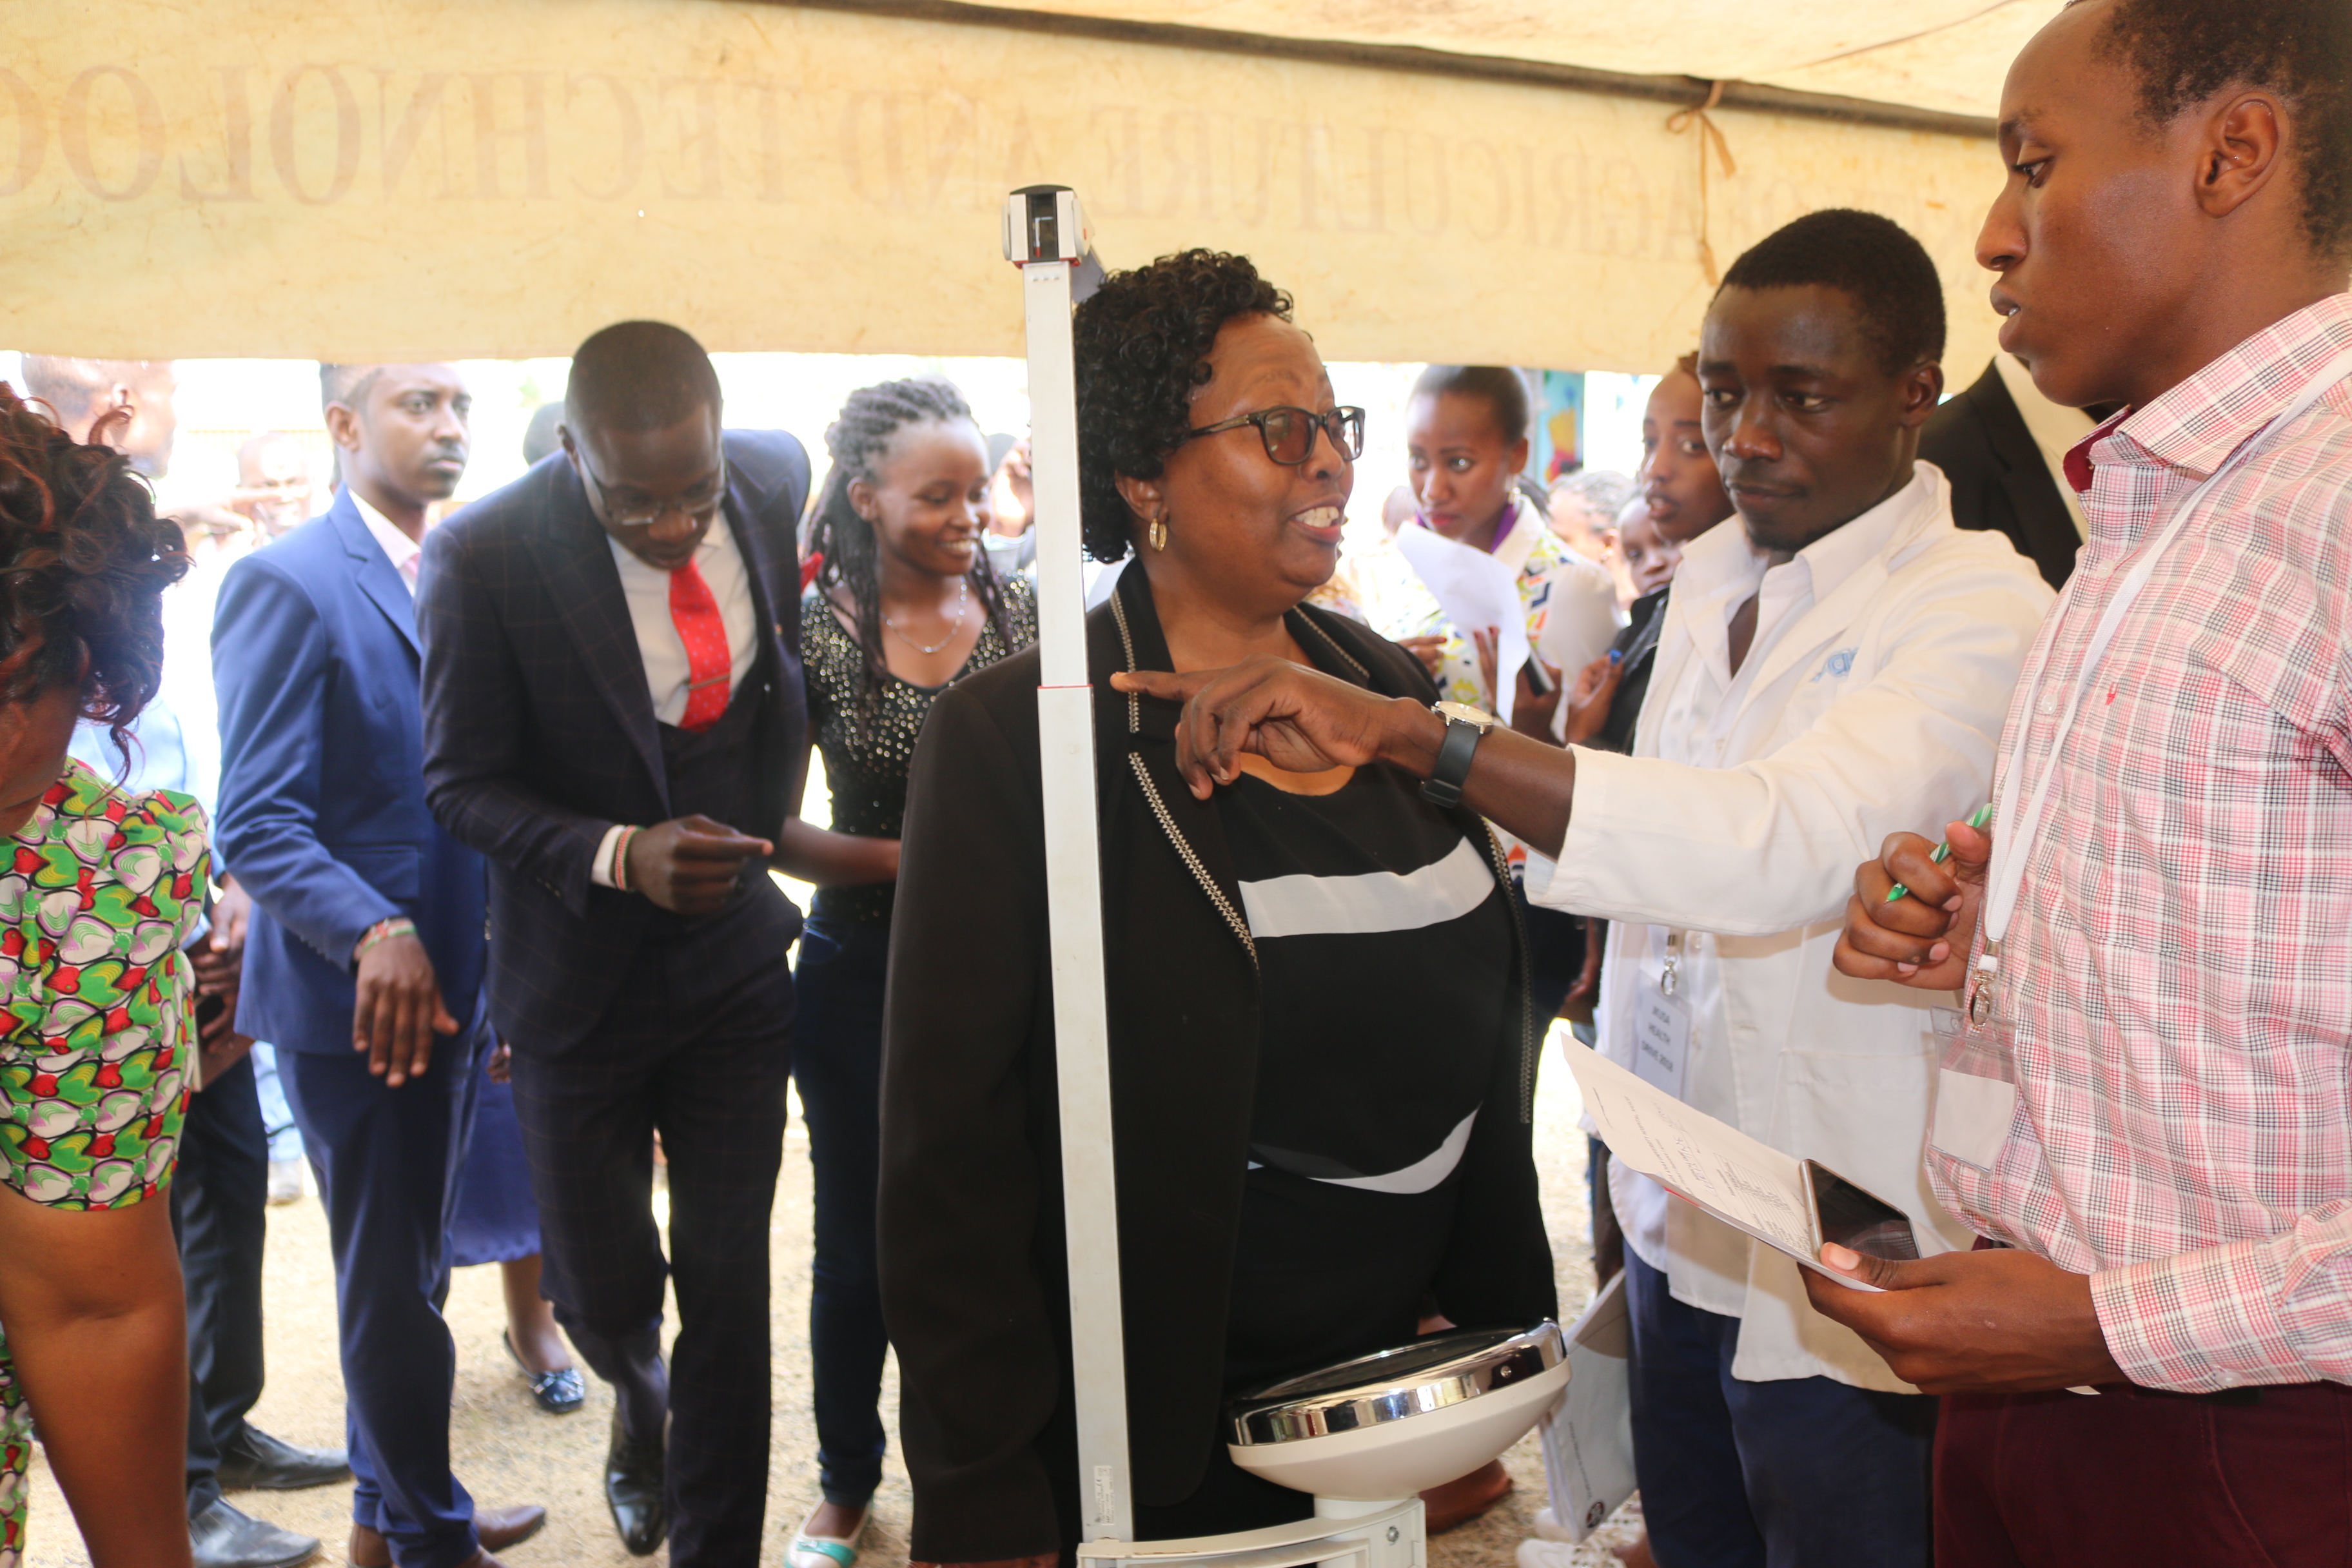 The Vice Chancellor participates at the health drive by checking her vitals.